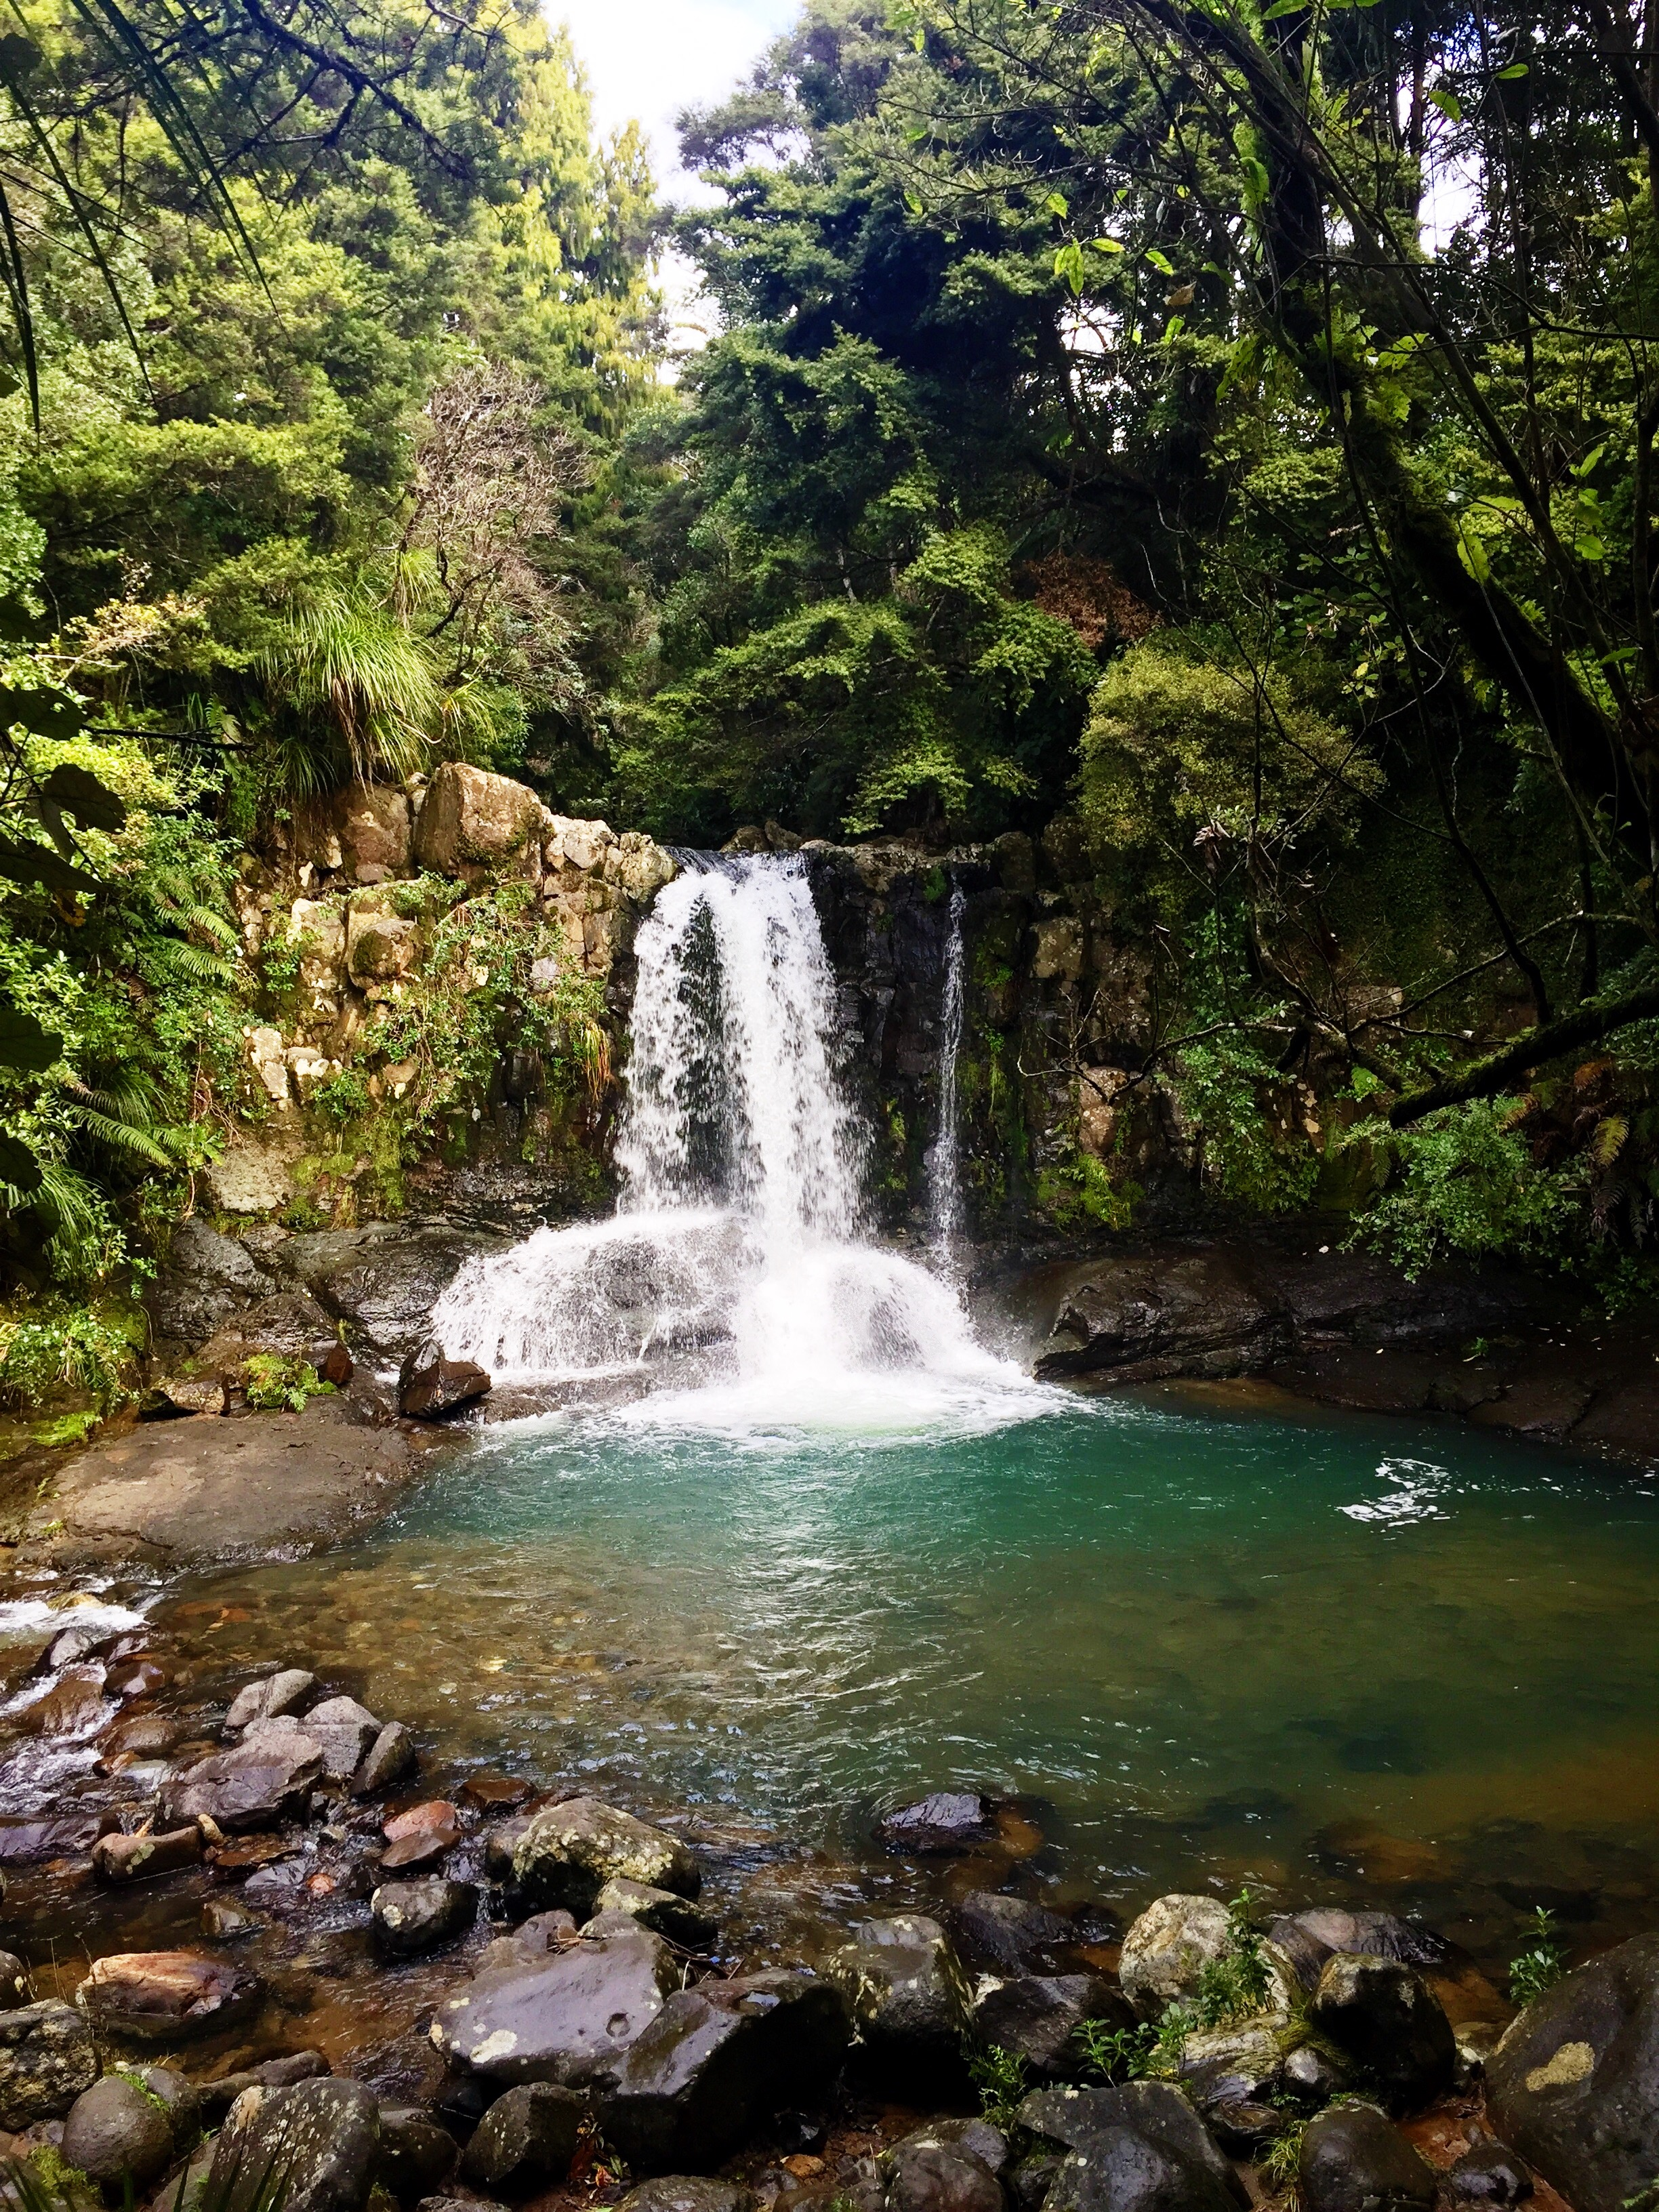 I found this waterfall on a pitstop while driving around the Coromandel Peninsula